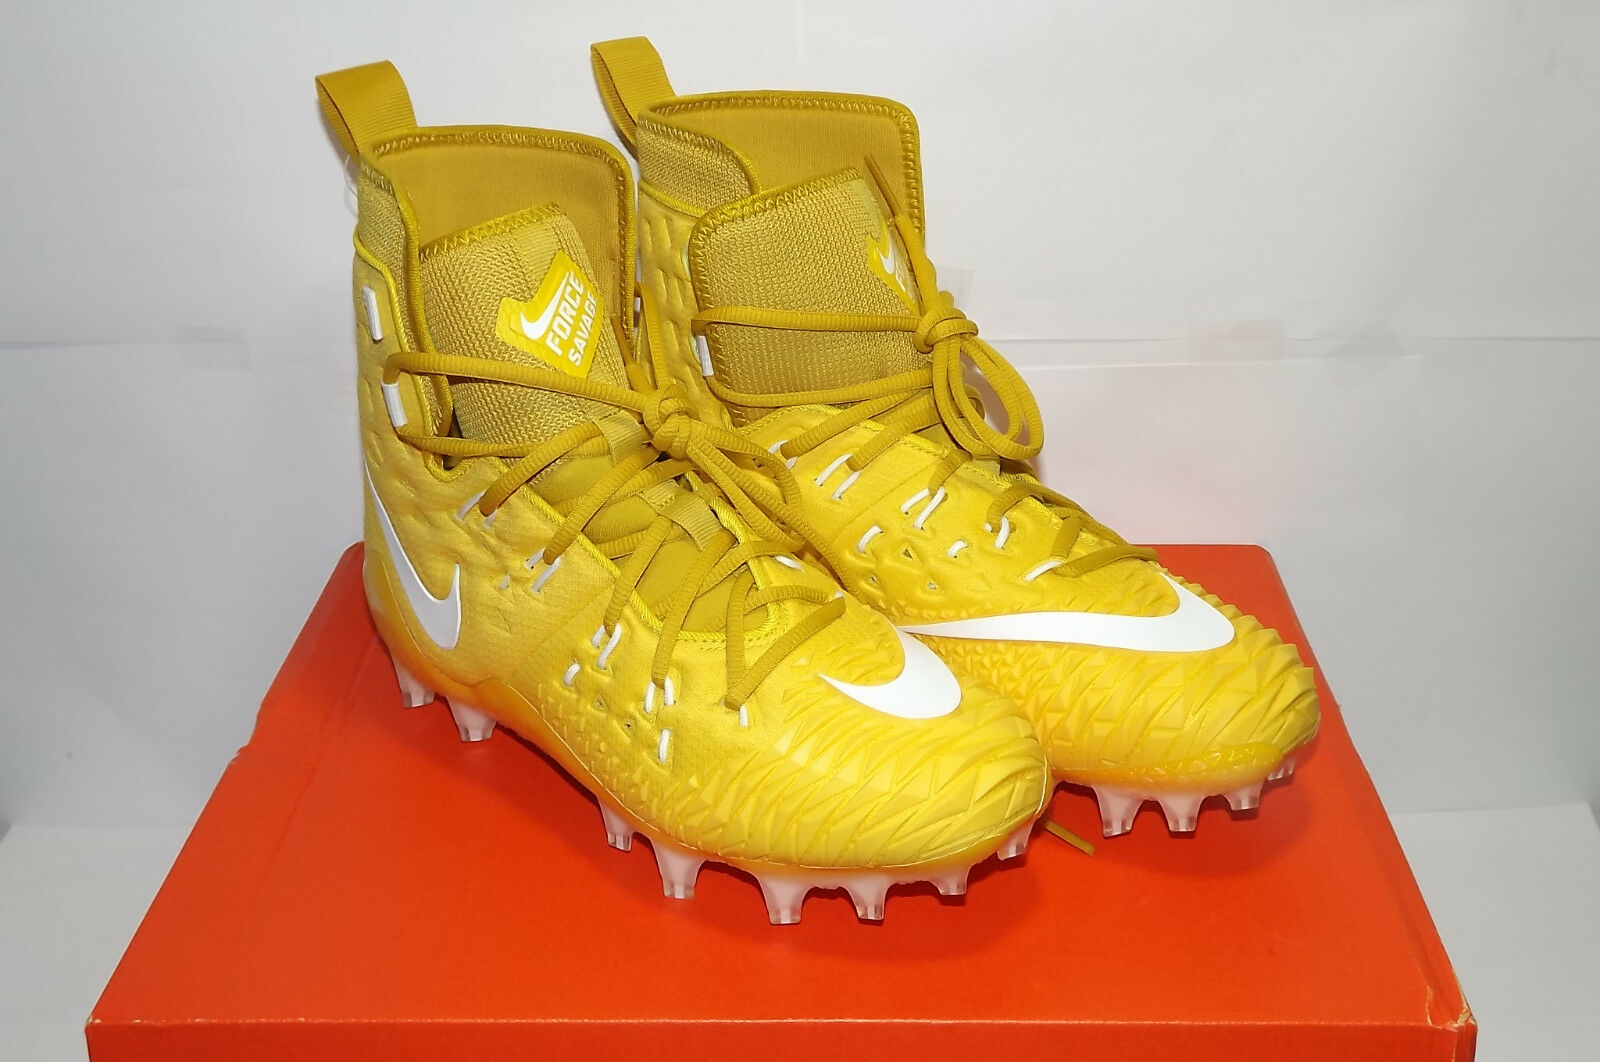 MEN'S NIKE FORCE SAVAGE ELITE TD 857063 717 FOOTBALL CLEATS YELLOW SIZE 8.5 NEW